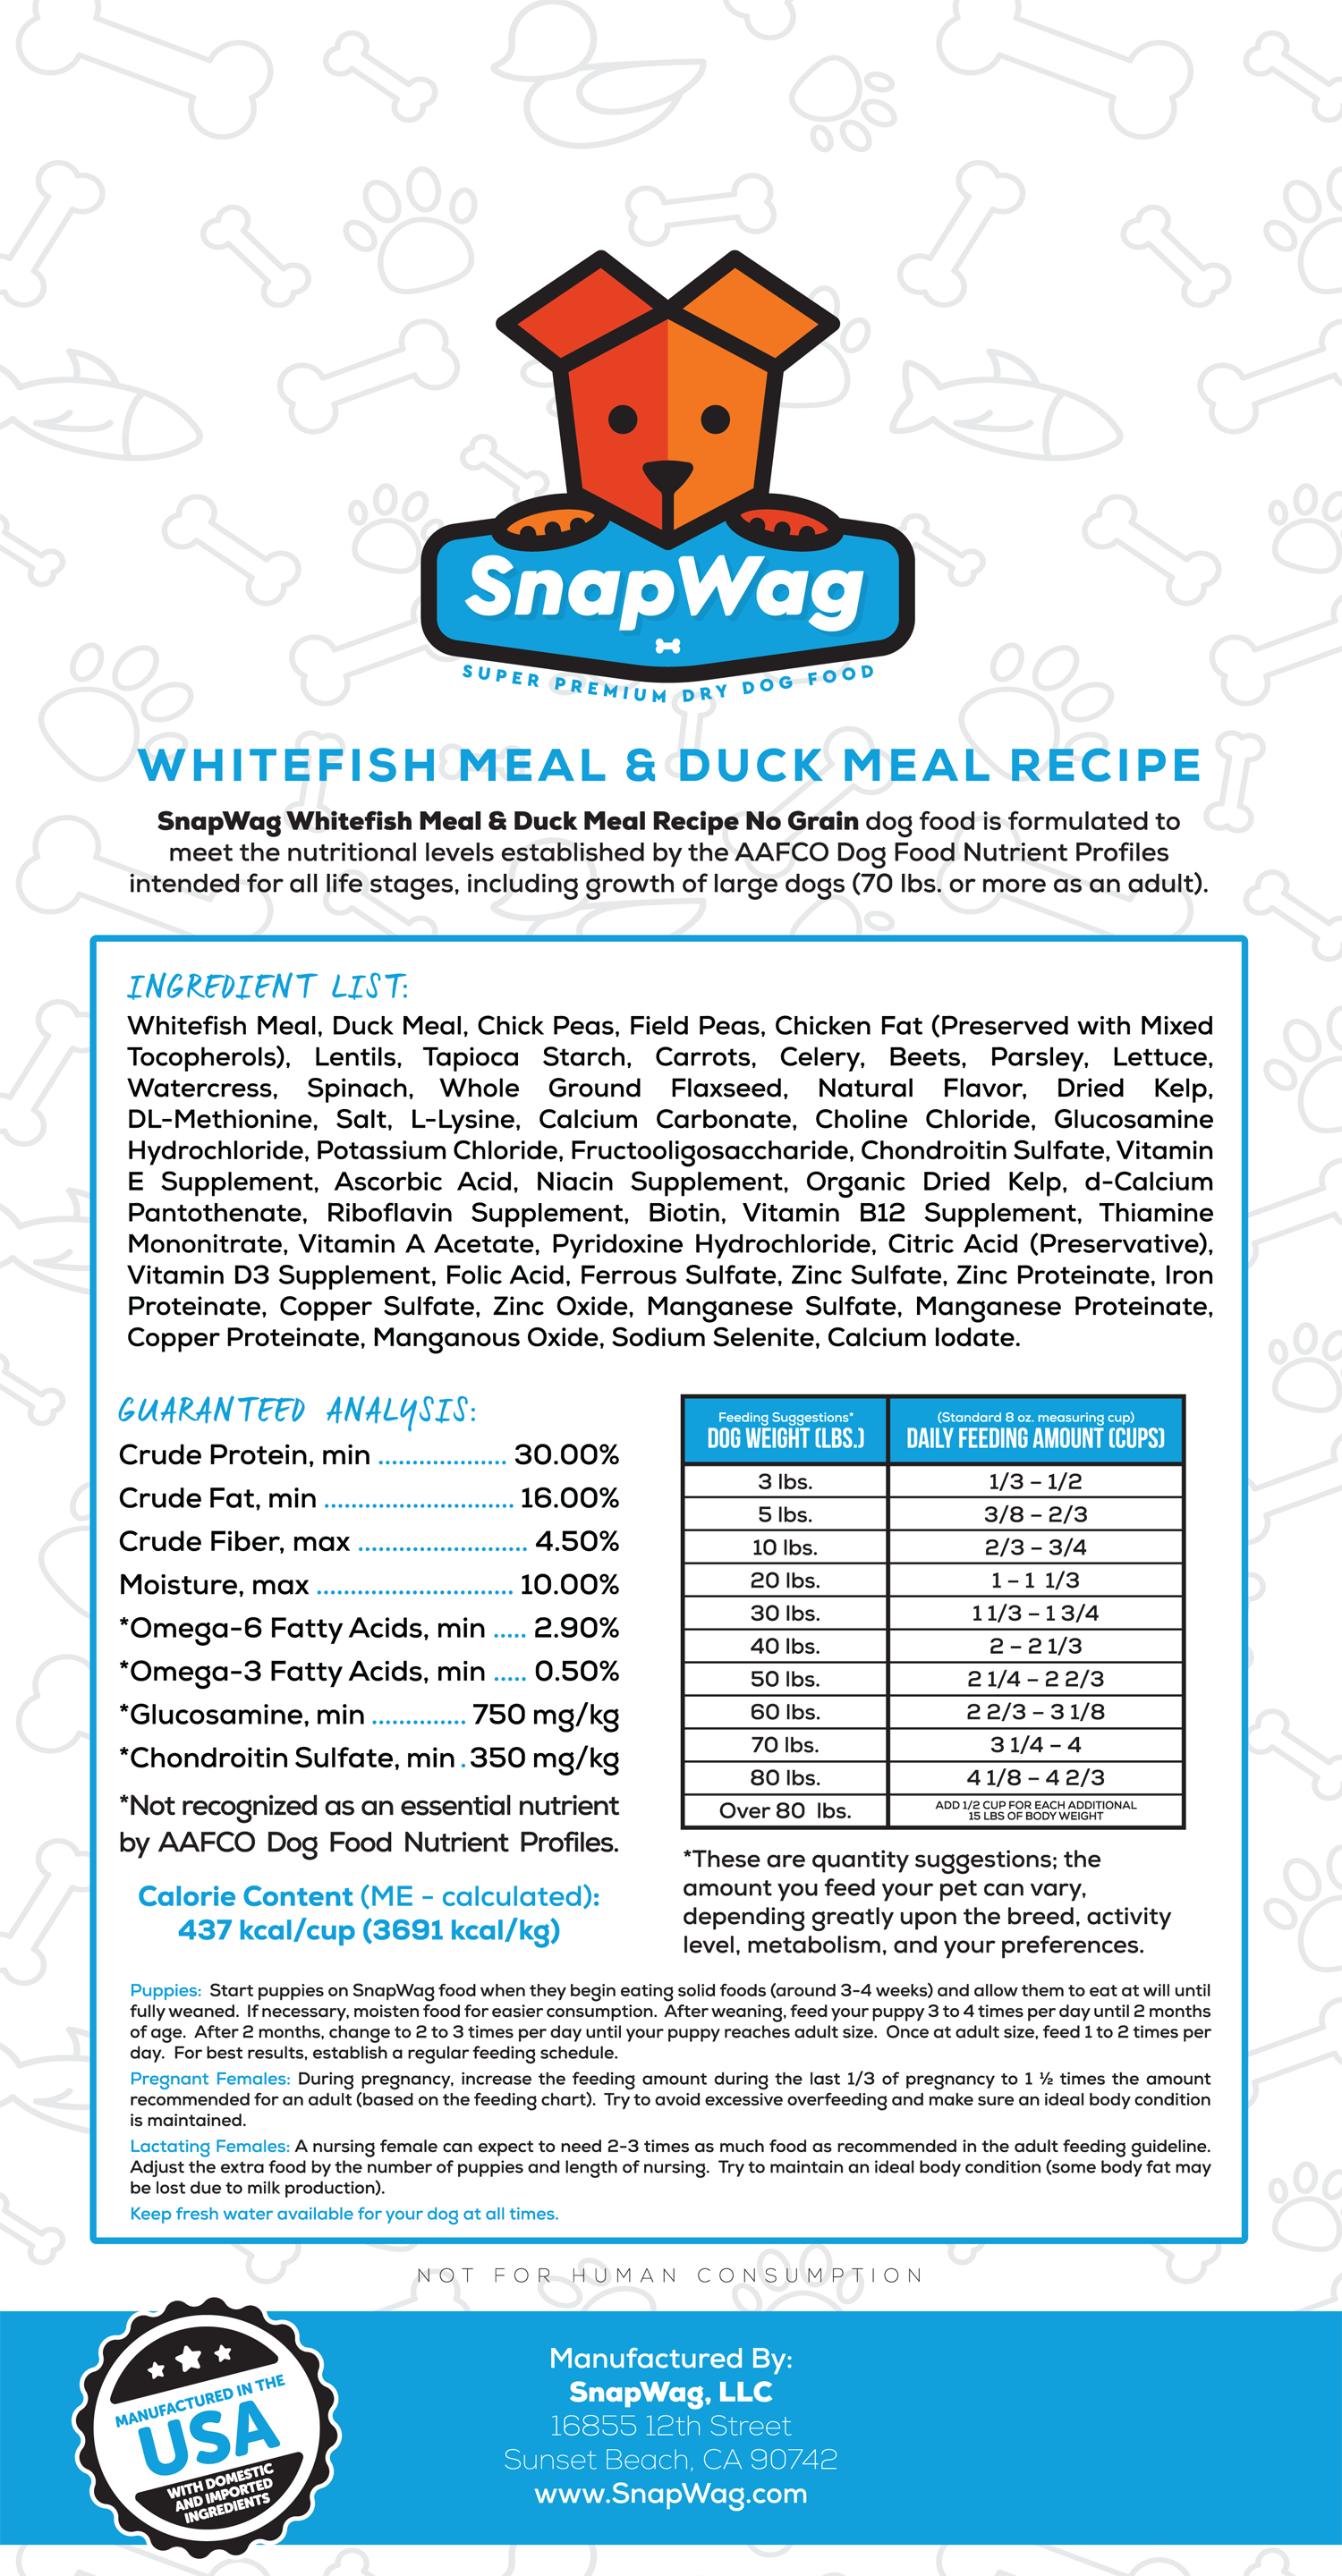 Whitefish Meal and Duck Meal Dog Food Recipe Label - SnapWag.com